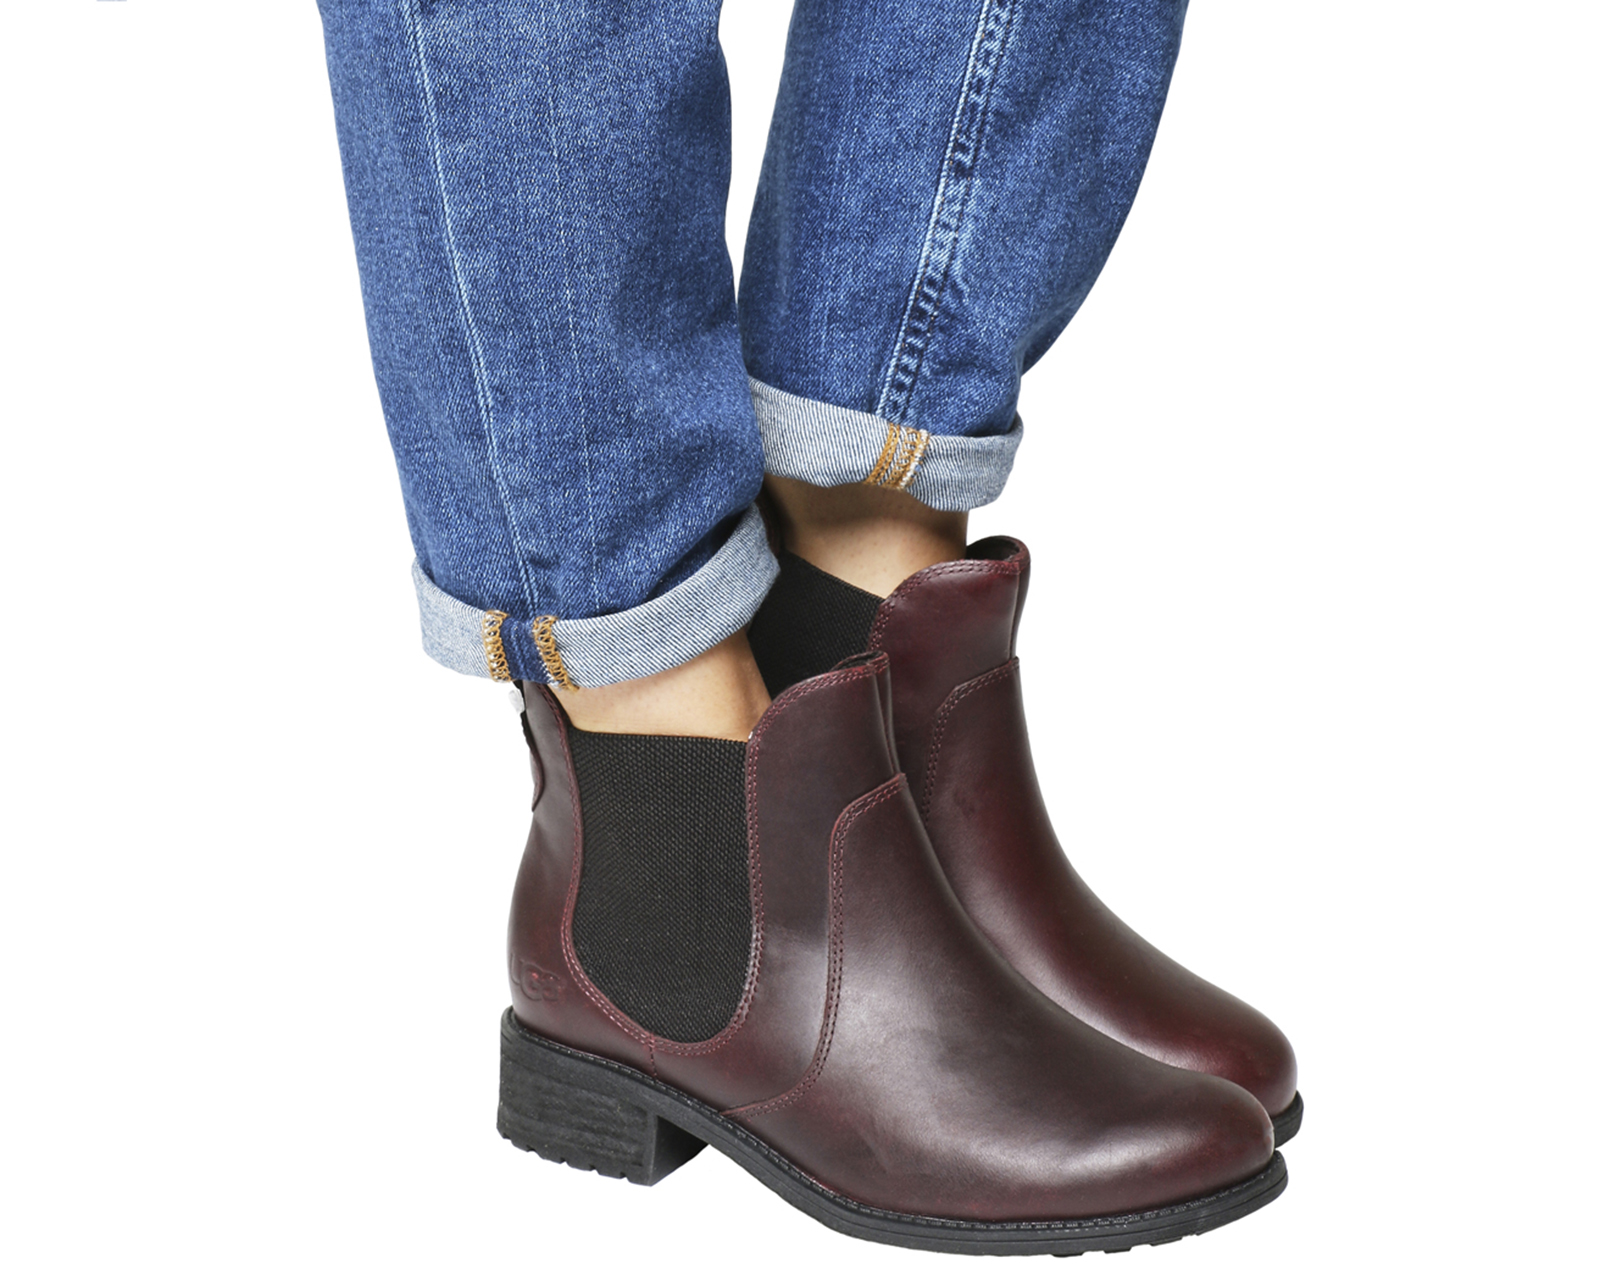 Womens Ugg Burgundy Leather Ankle Boots Uk Size 6 5 Ex